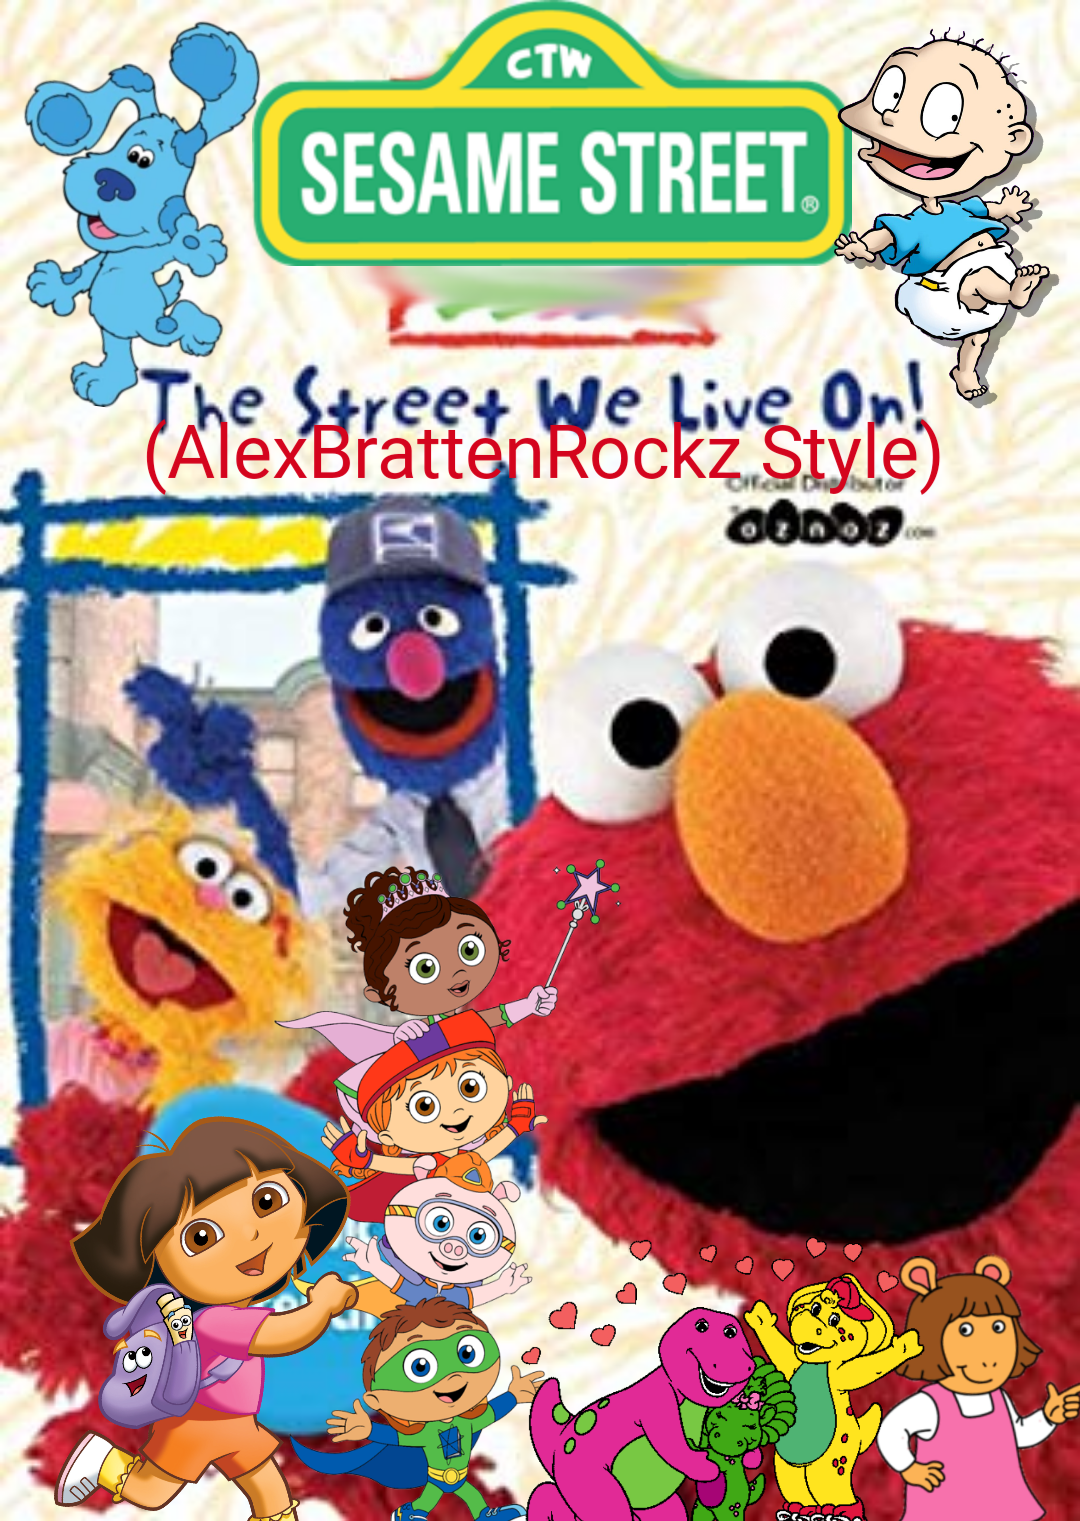 Sesame Street: The Street We Live On (AlexBrattenRockz Style)